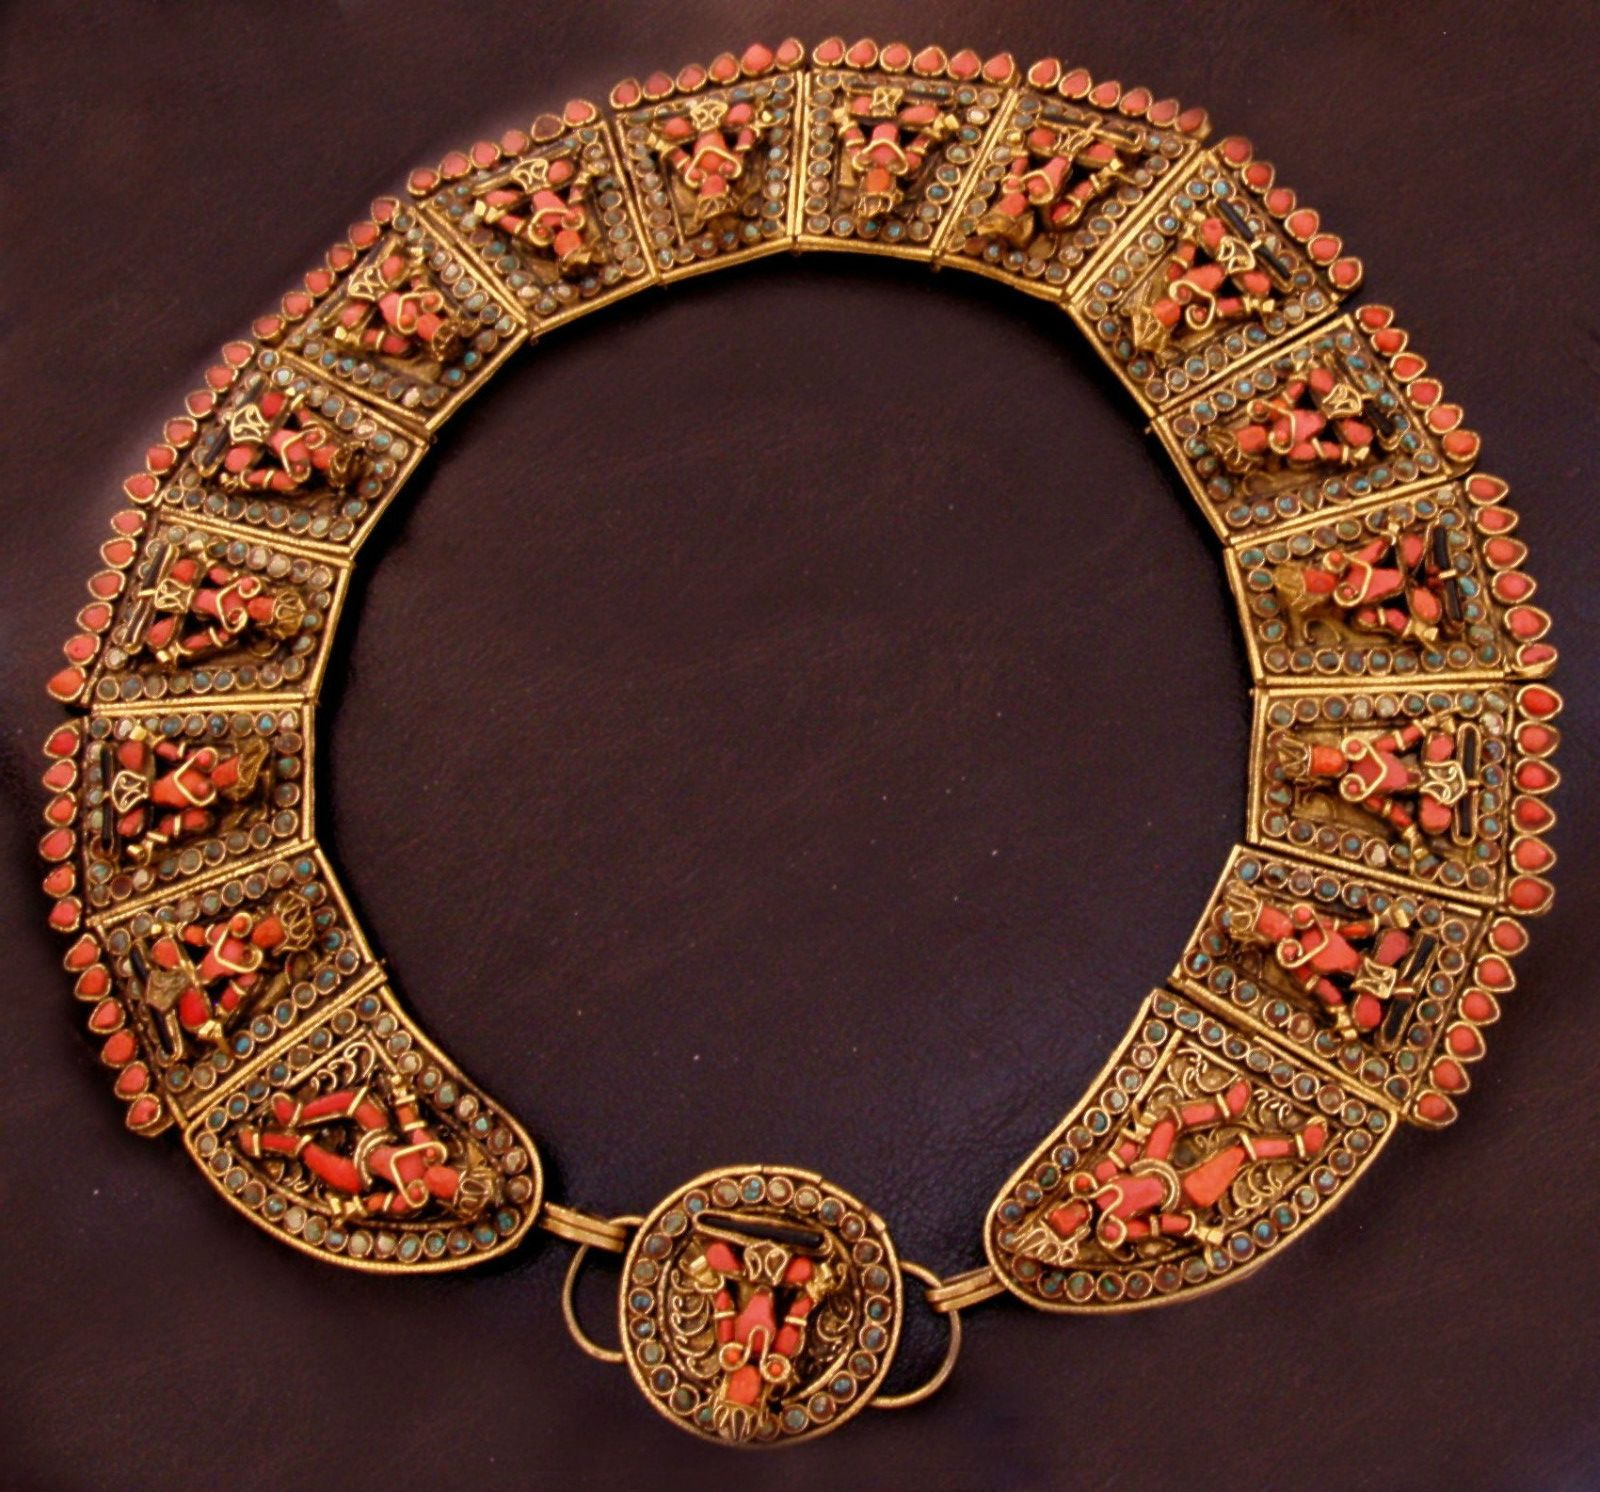 Tibet | Vintage necklace consisting of 16 brass panels, each depicting a standing or sitting 3 dimensional figure, using turquoise and red and black coral stones | ca. 1930s.